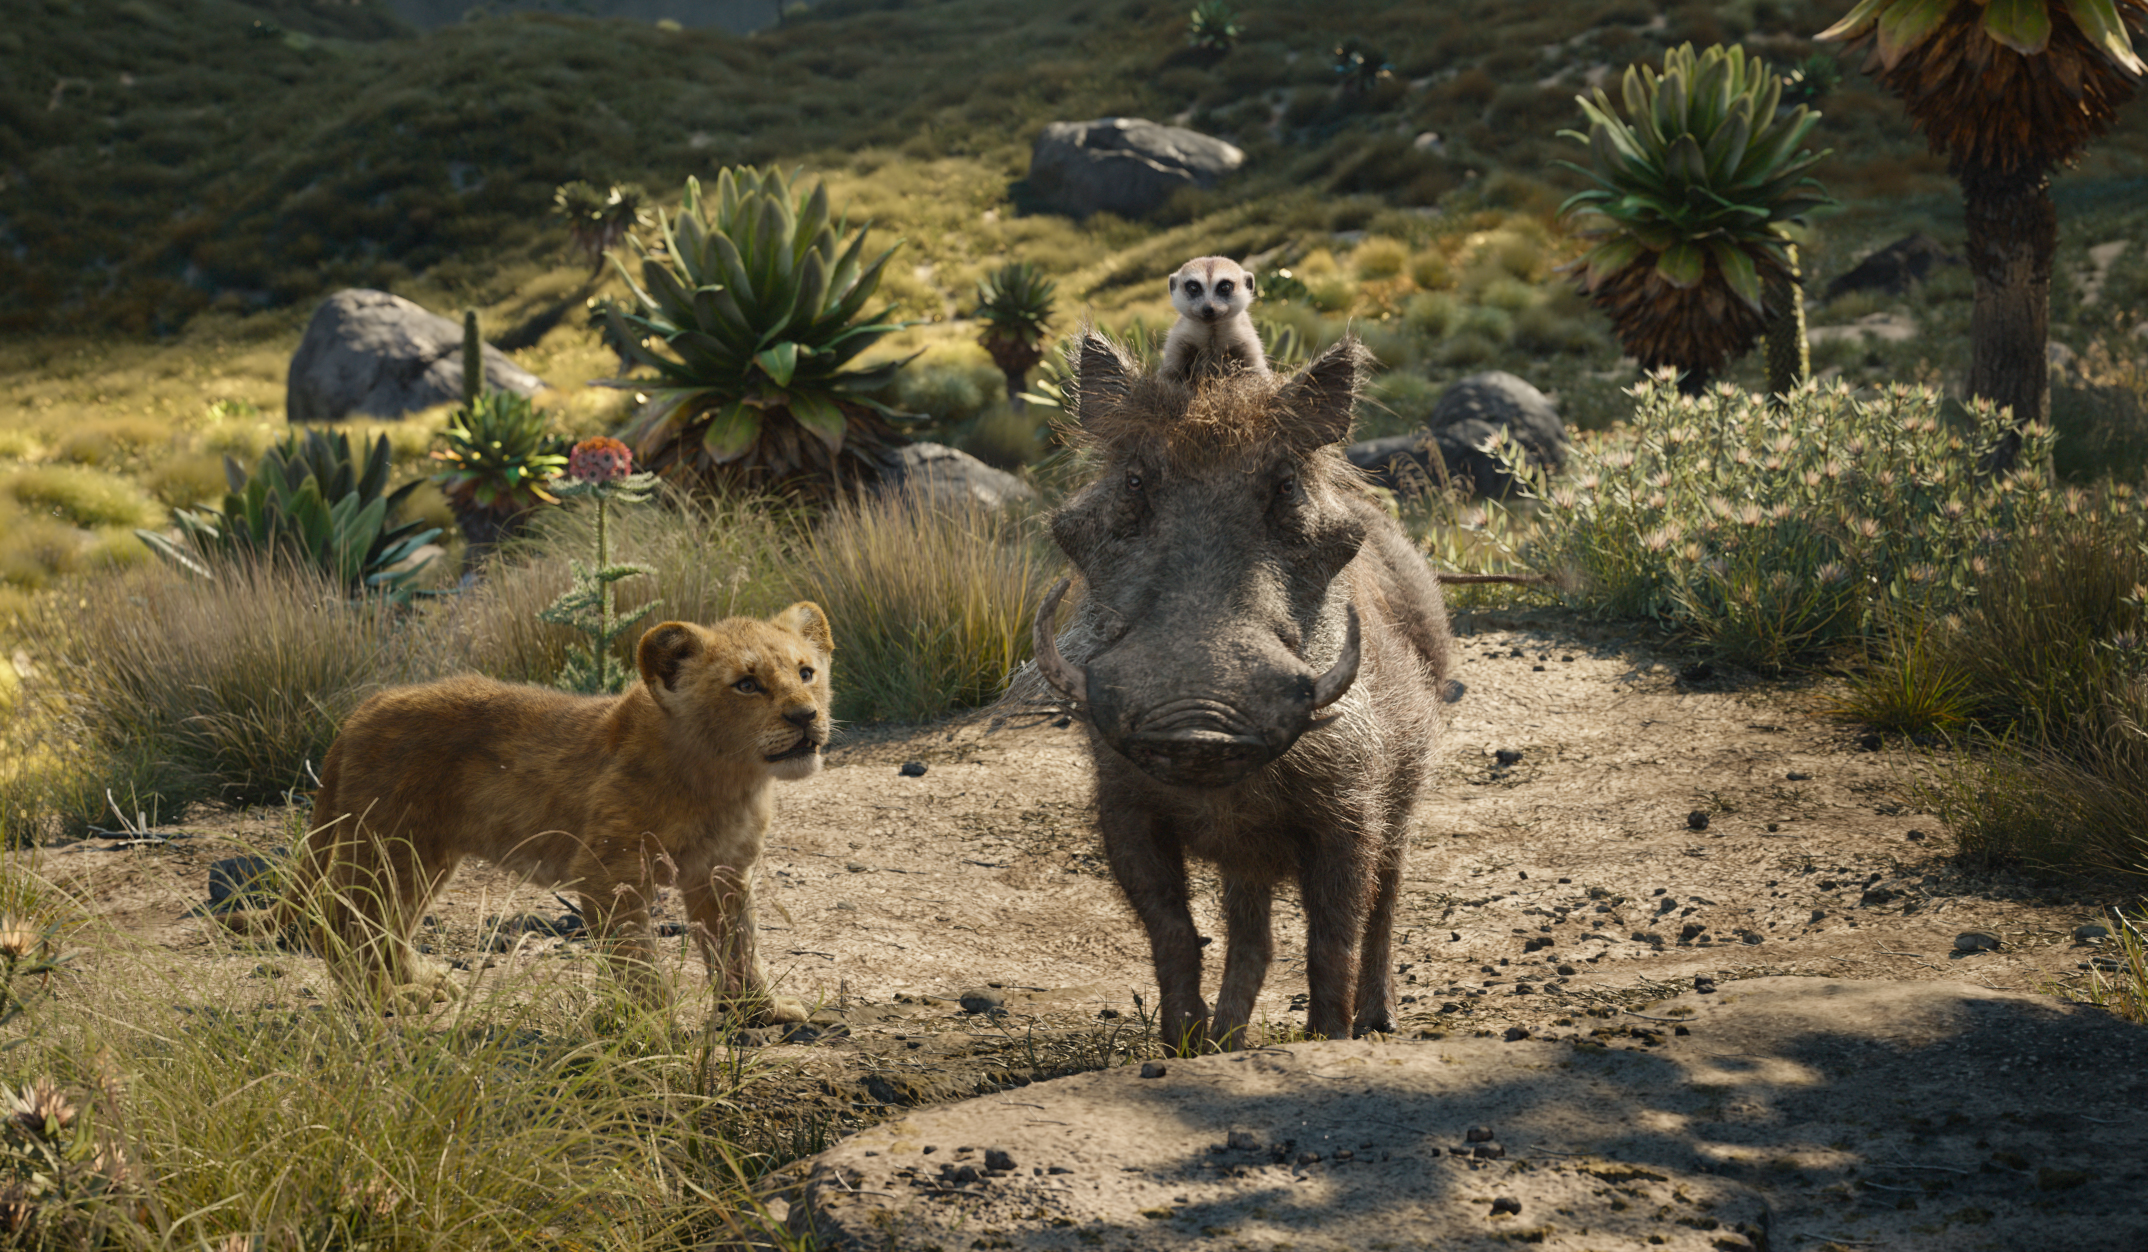 Pumba, Timon, and Simba, in Disney's live-action The Lion King